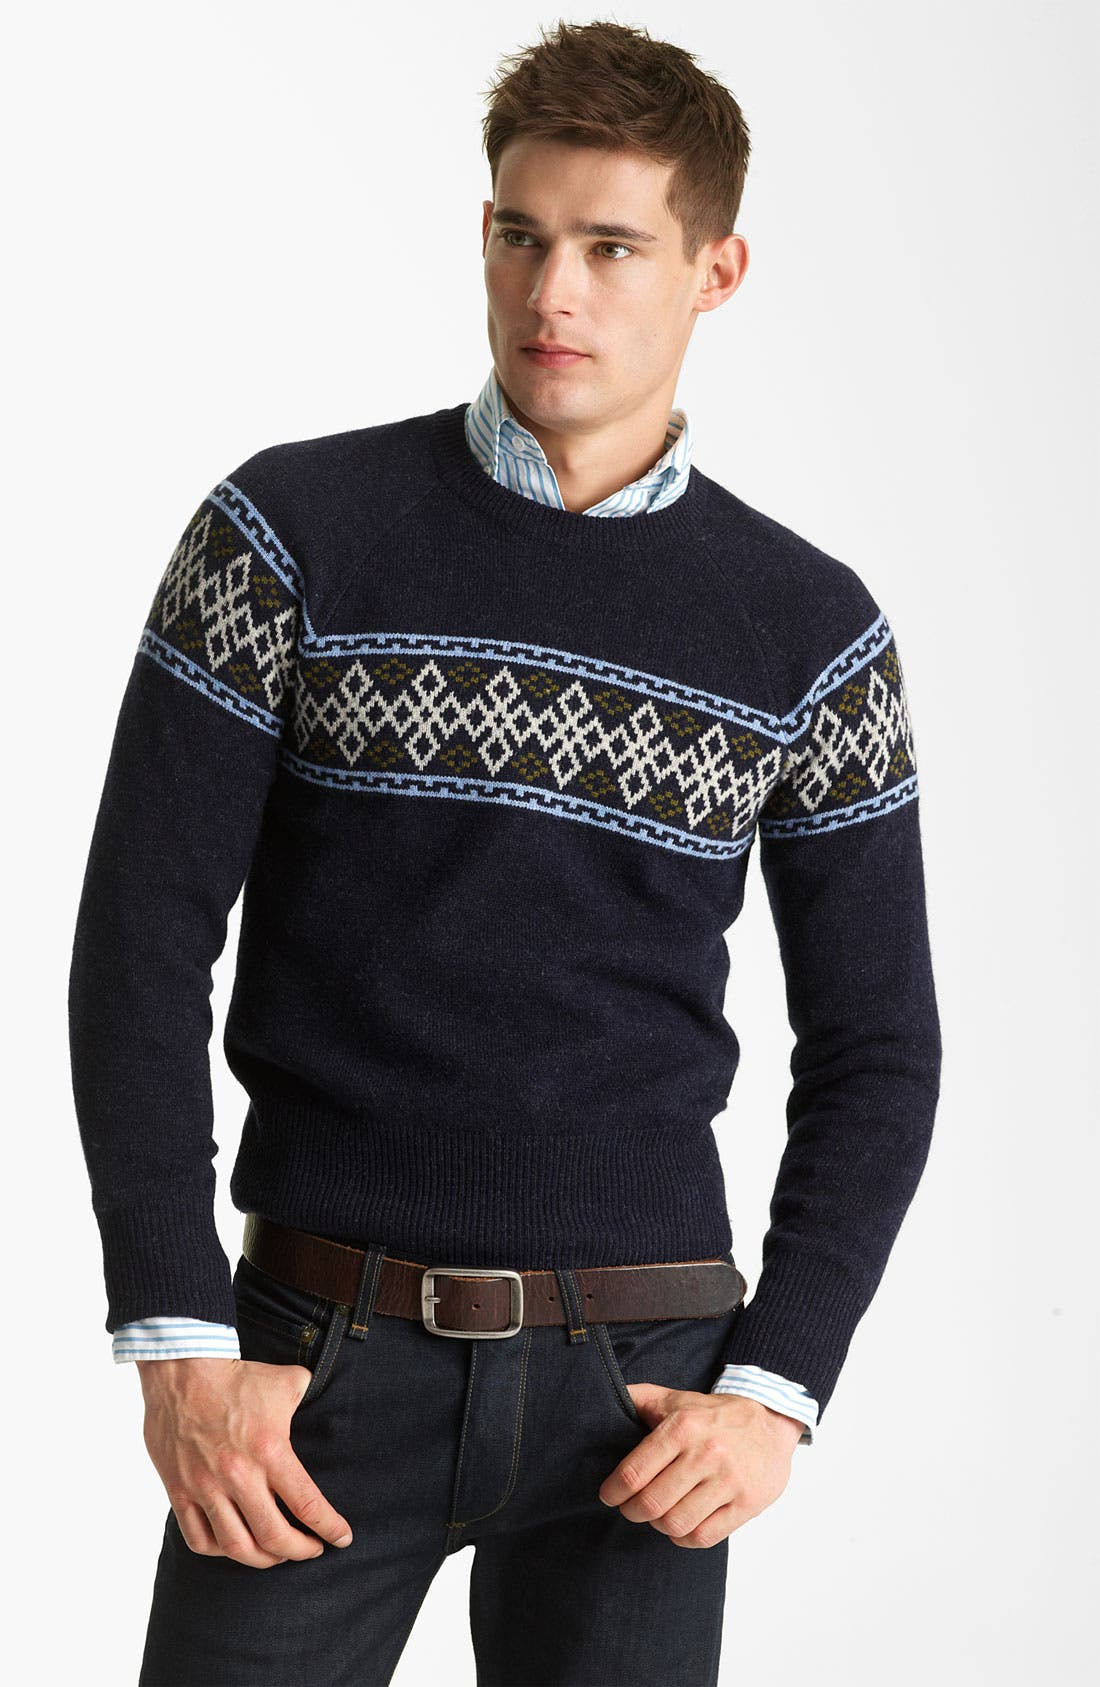 GANT BY MICHAEL BASTIAN Wool Crewneck Sweater, Main, color, 410